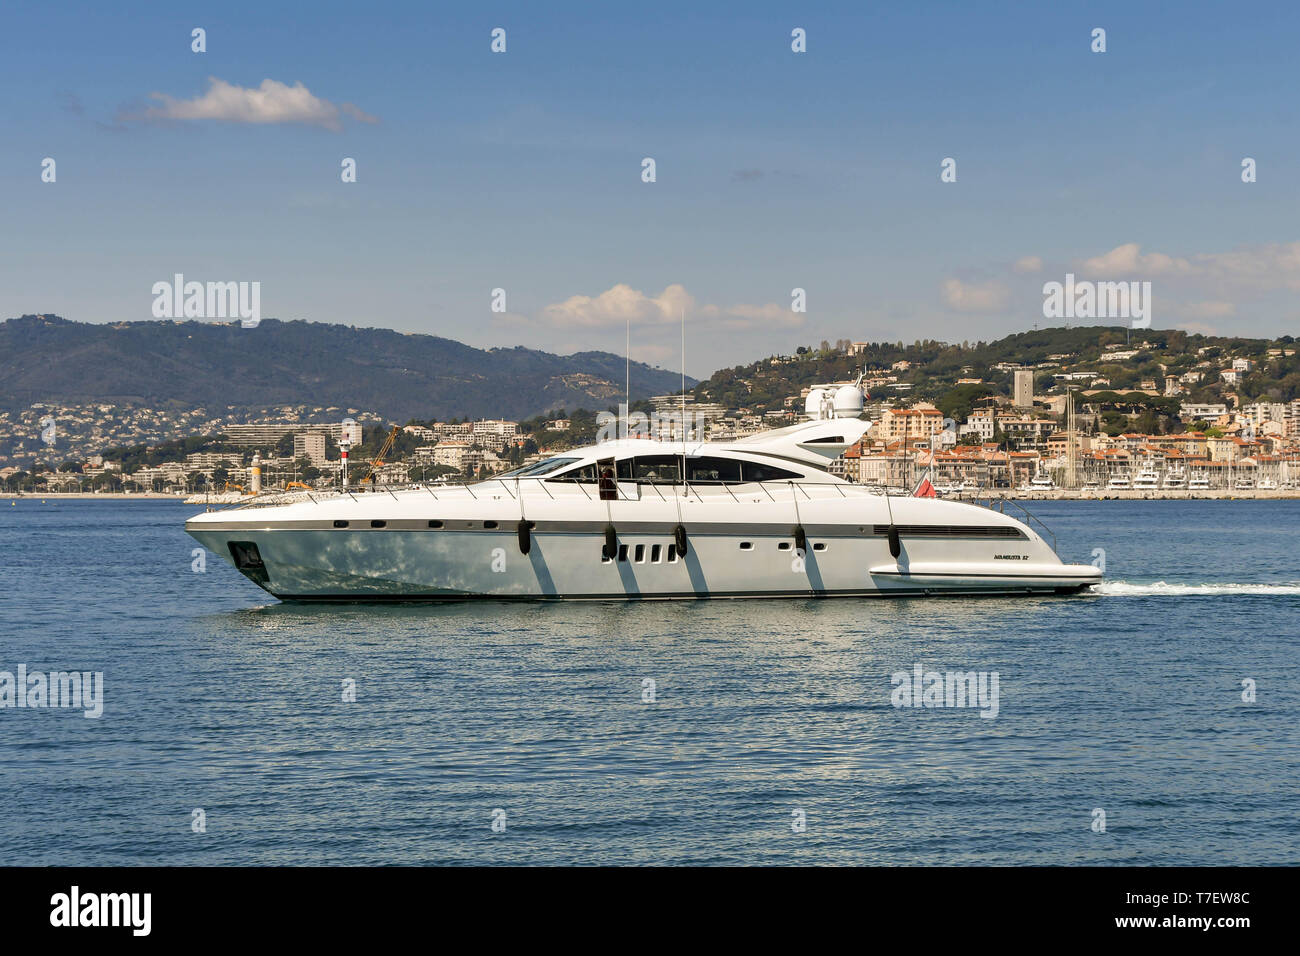 CANNES, FRANCE - APRIL 2019: Luxury motor yacht cruising in the bay in Cannes with the beach and seafront buildings in the background. - Stock Image